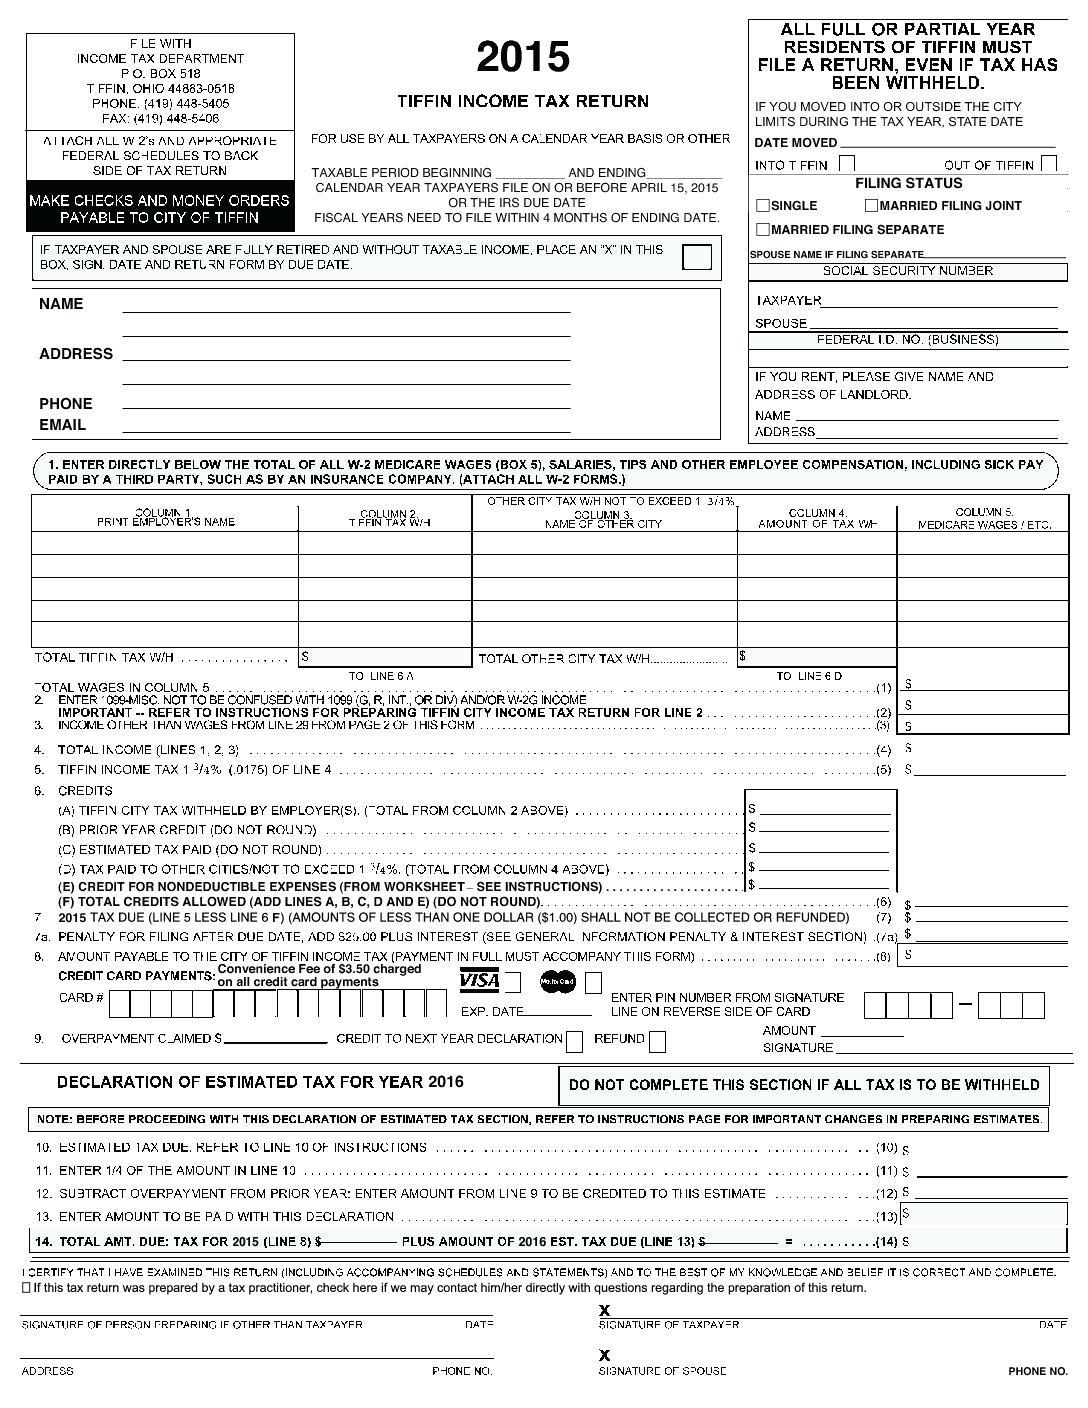 Irs Tax Form 1040a 2015 Instructions